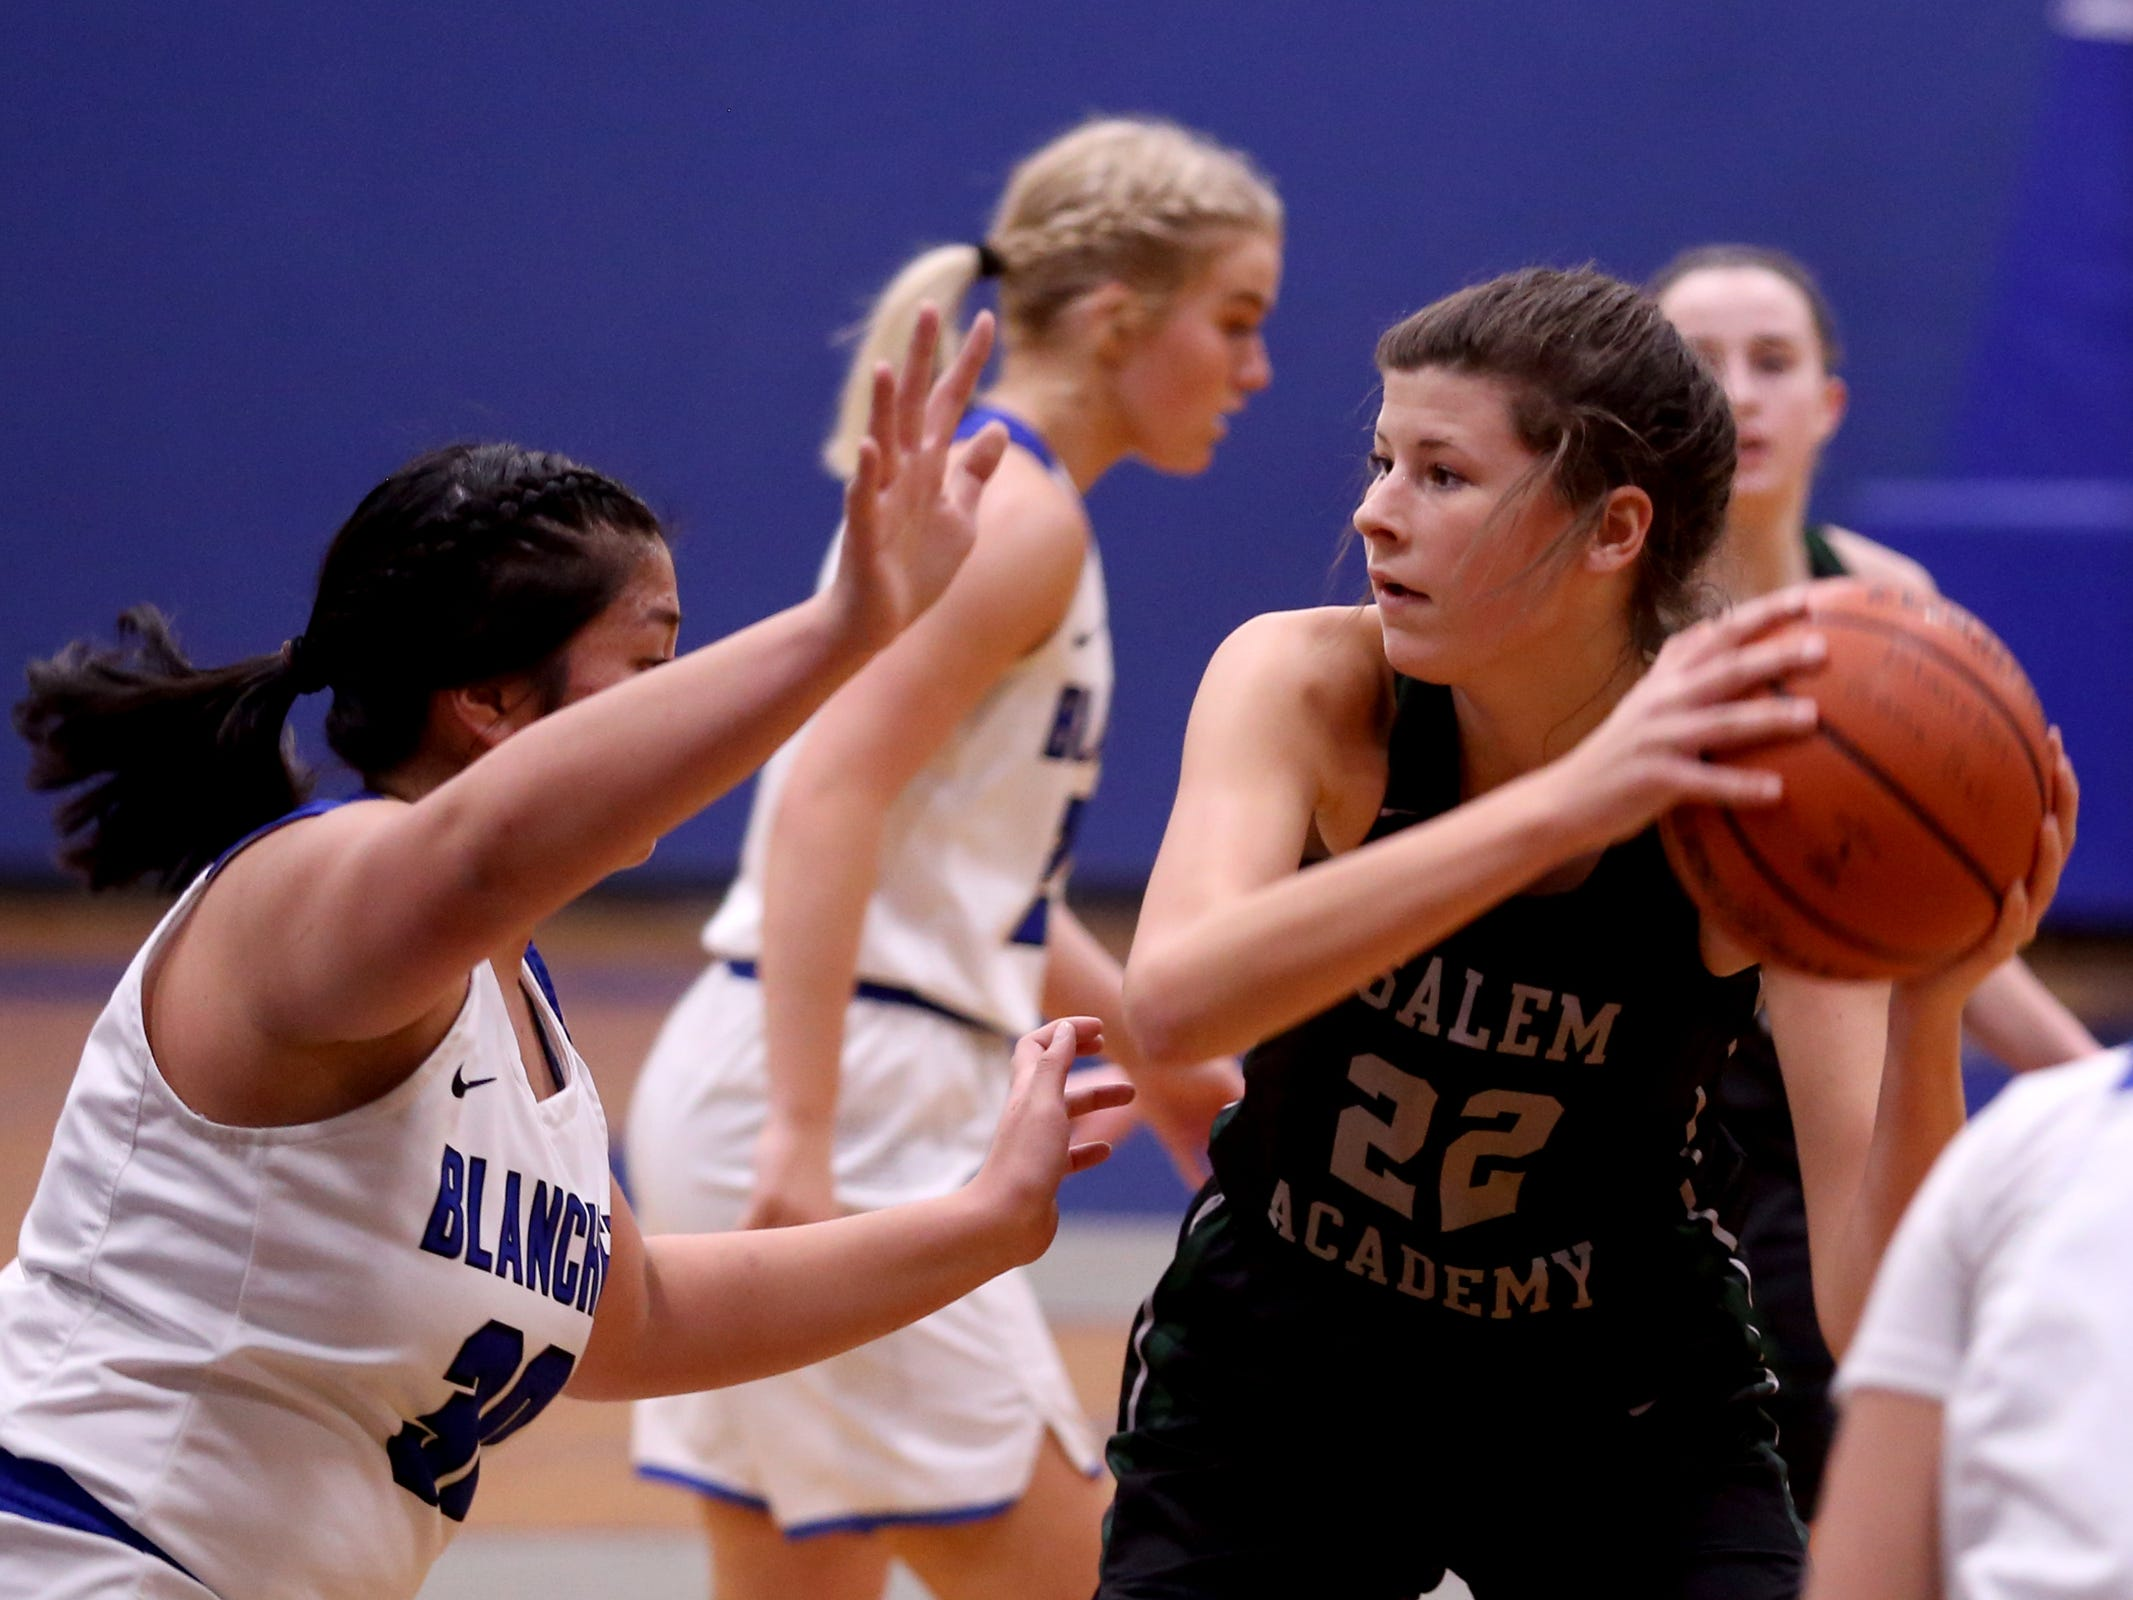 Salem Academy's Chloe Baker (22) holds on to the ball in the first half of the Salem Academy vs. Blanchet Catholic girls basketball game at Blanchet Catholic School in Salem on Friday, Jan. 18, 2019. Blanchet Catholic won the gam 48-40.